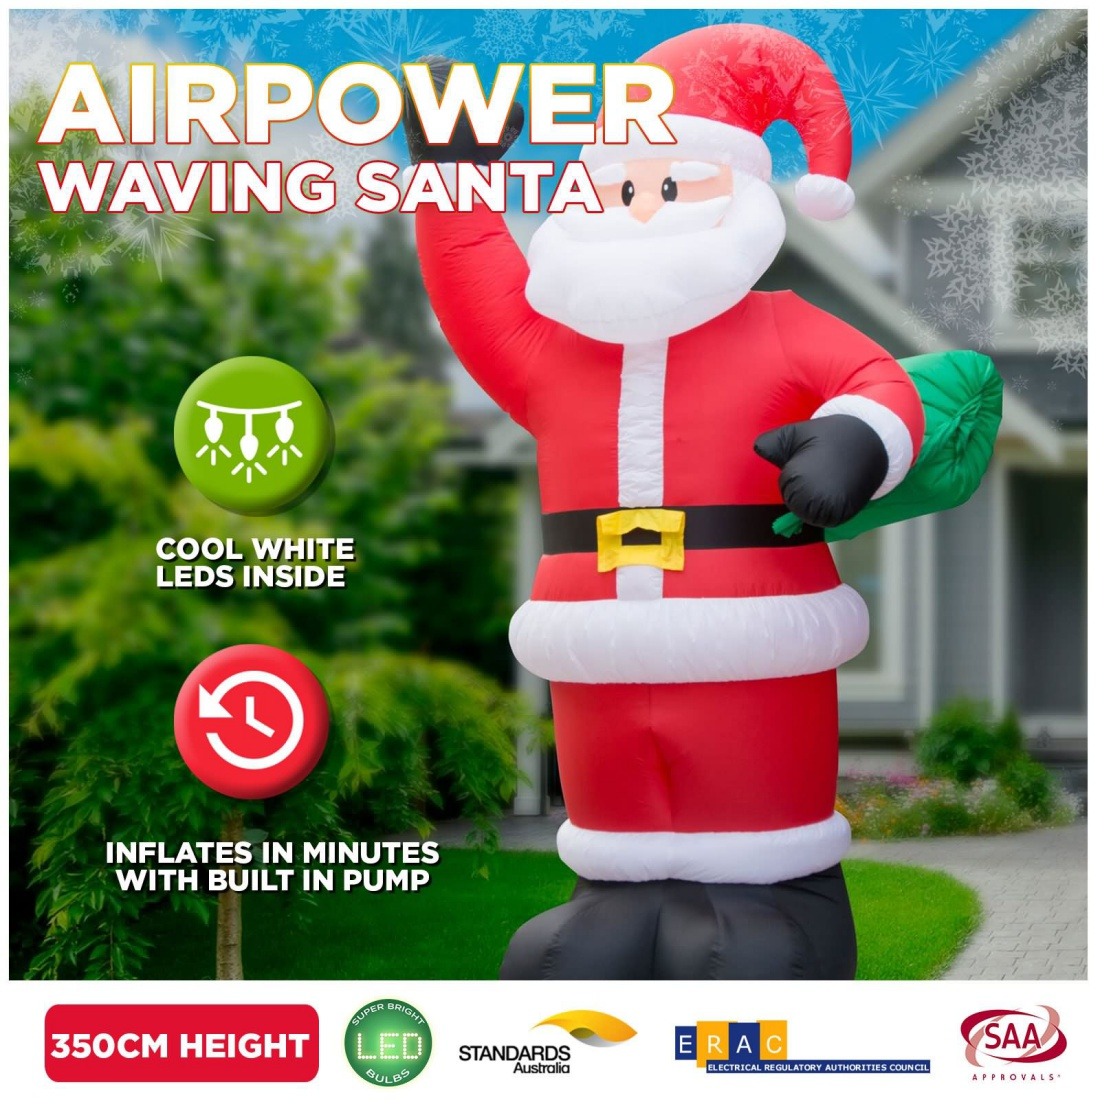 3.5m Inflatable Giant Santa Sack LED Light Outdoor Christmas Airpower Decor